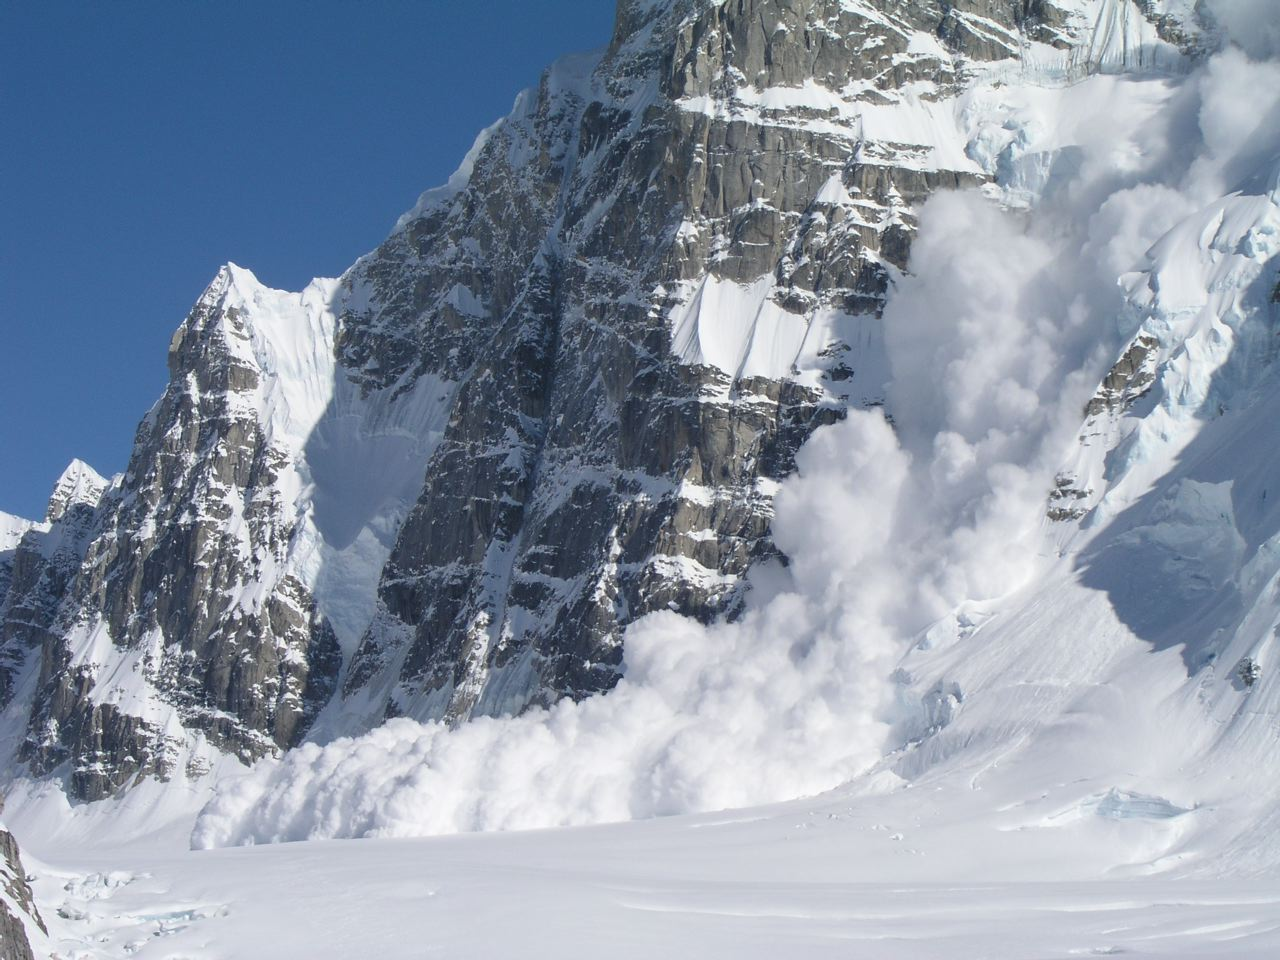 Check the Avalanche Courses page often for classes near you! Find avalanche education opportunities throughout Alaska.